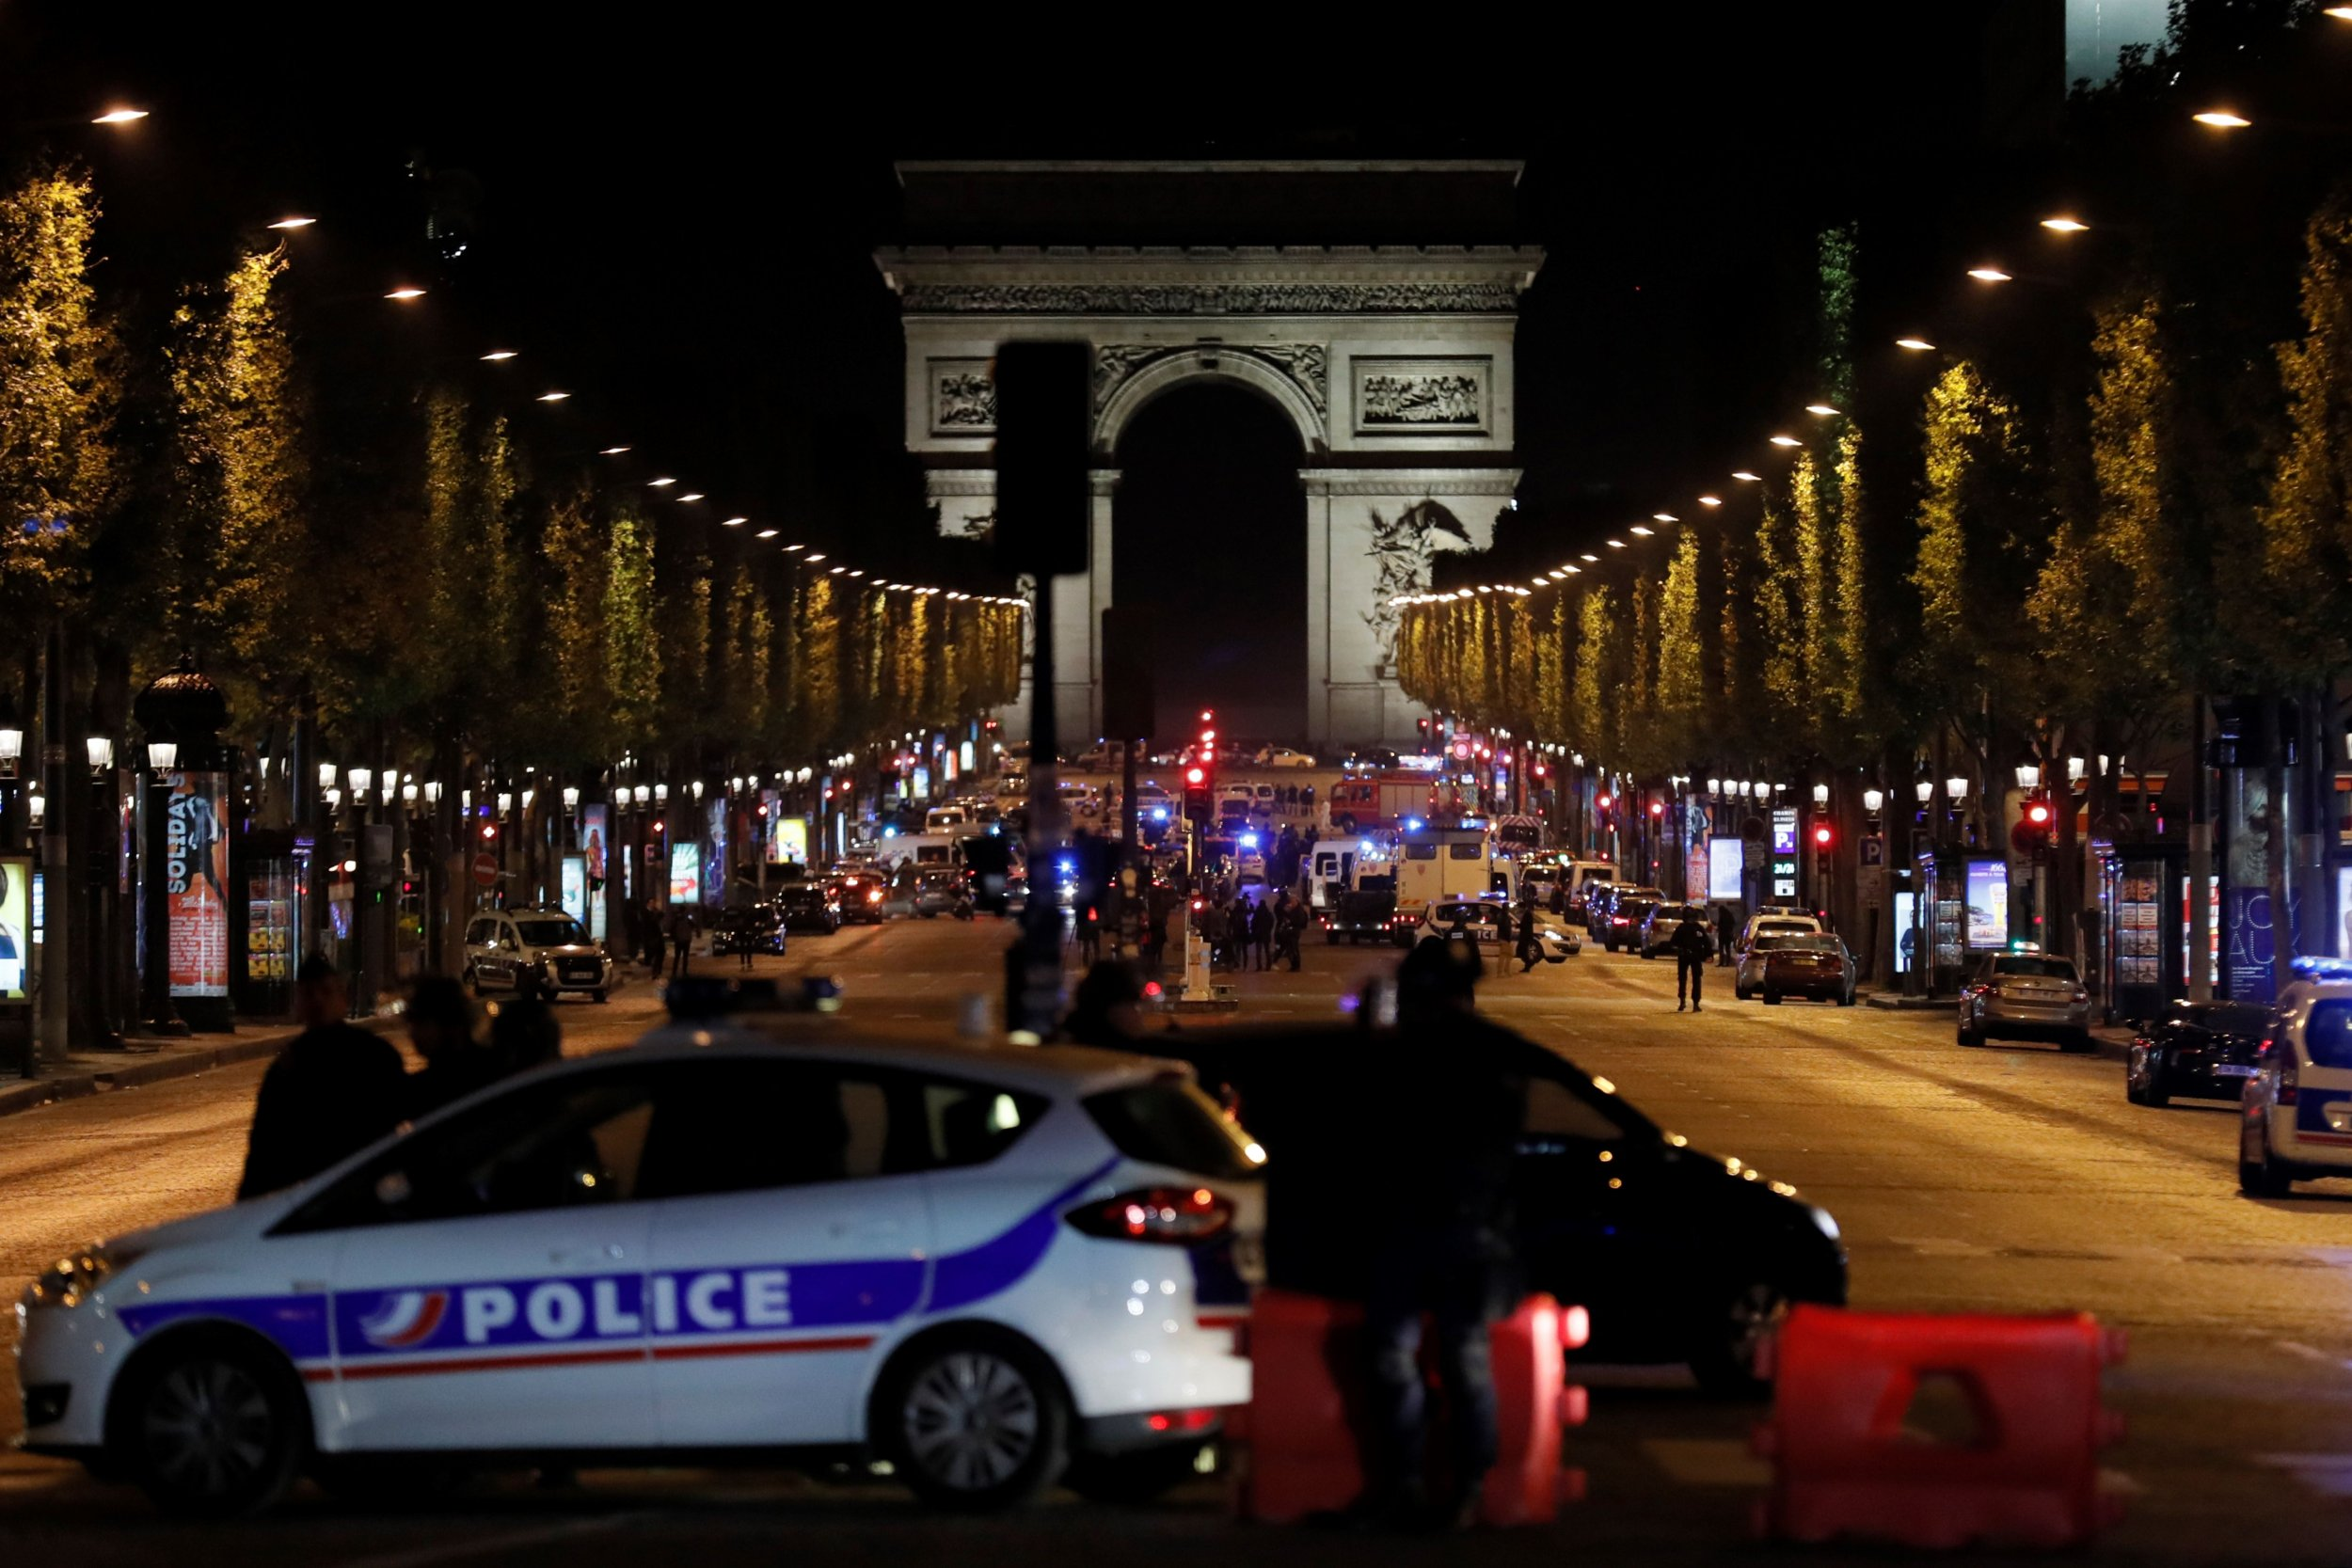 Paris Suspected Attacker Downed On Champs Elys Es After